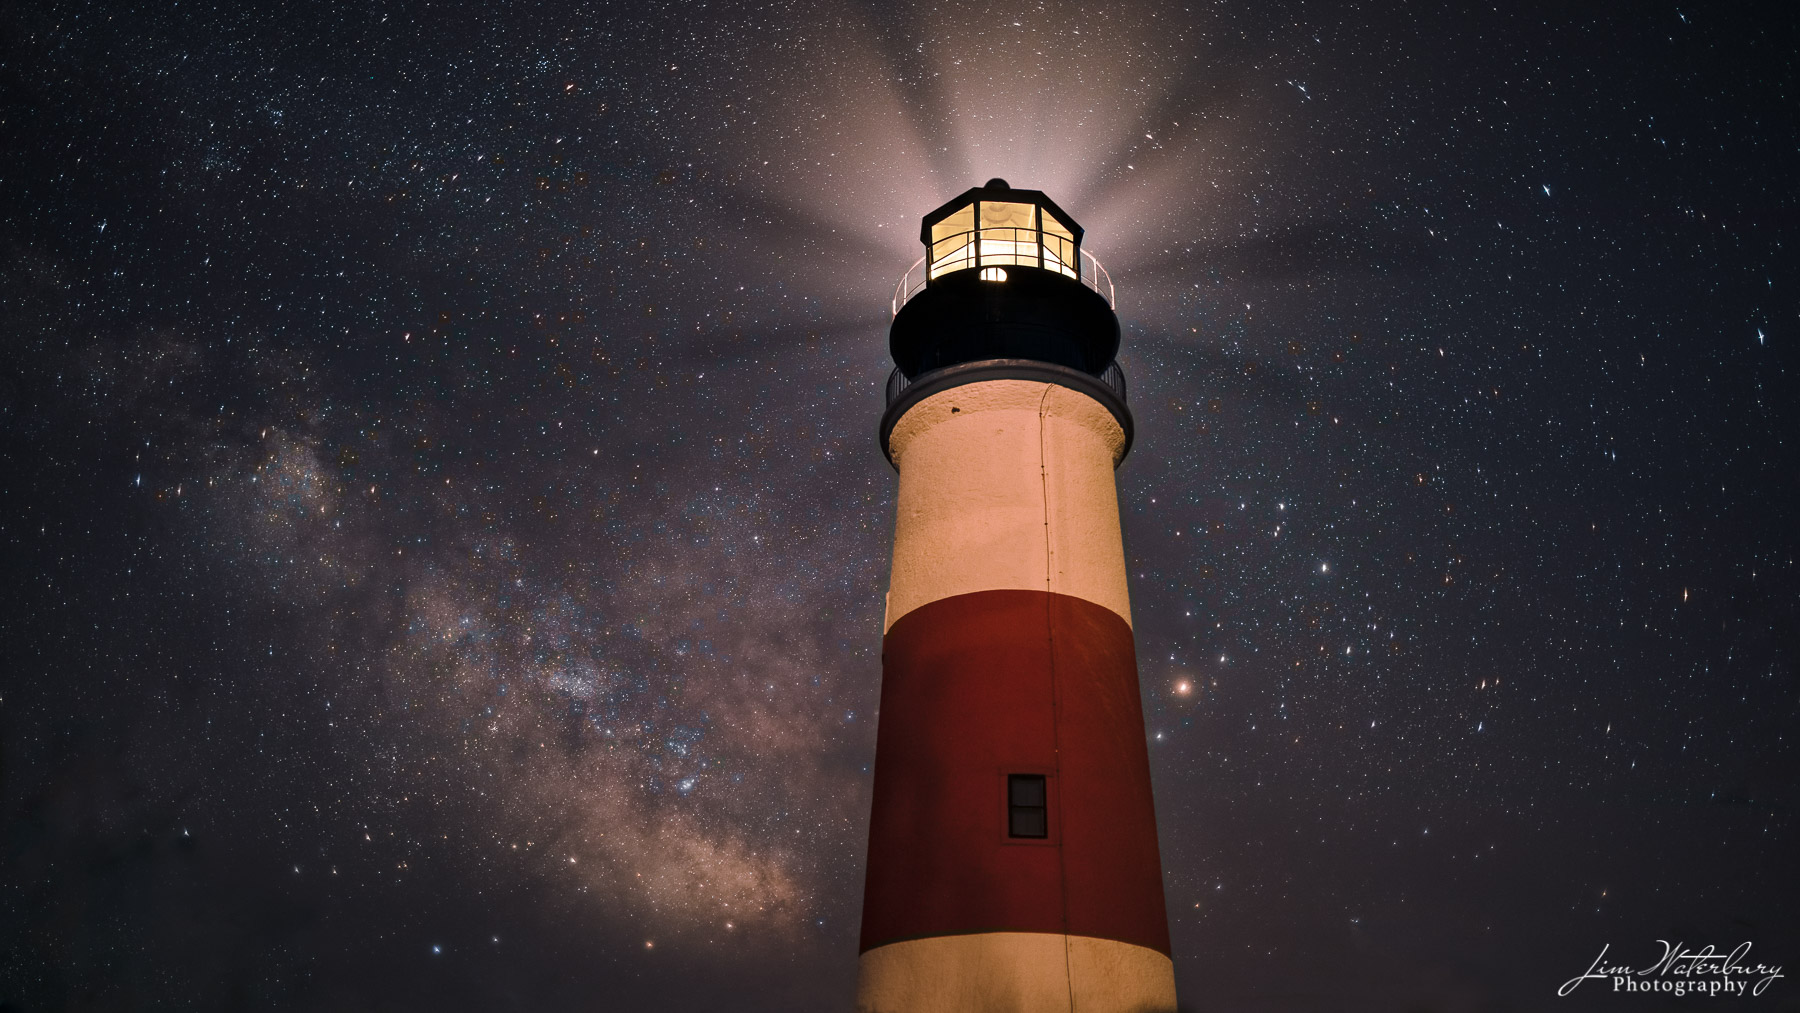 Sankaty Light shines, with the Milky Way visible in the late June sky.